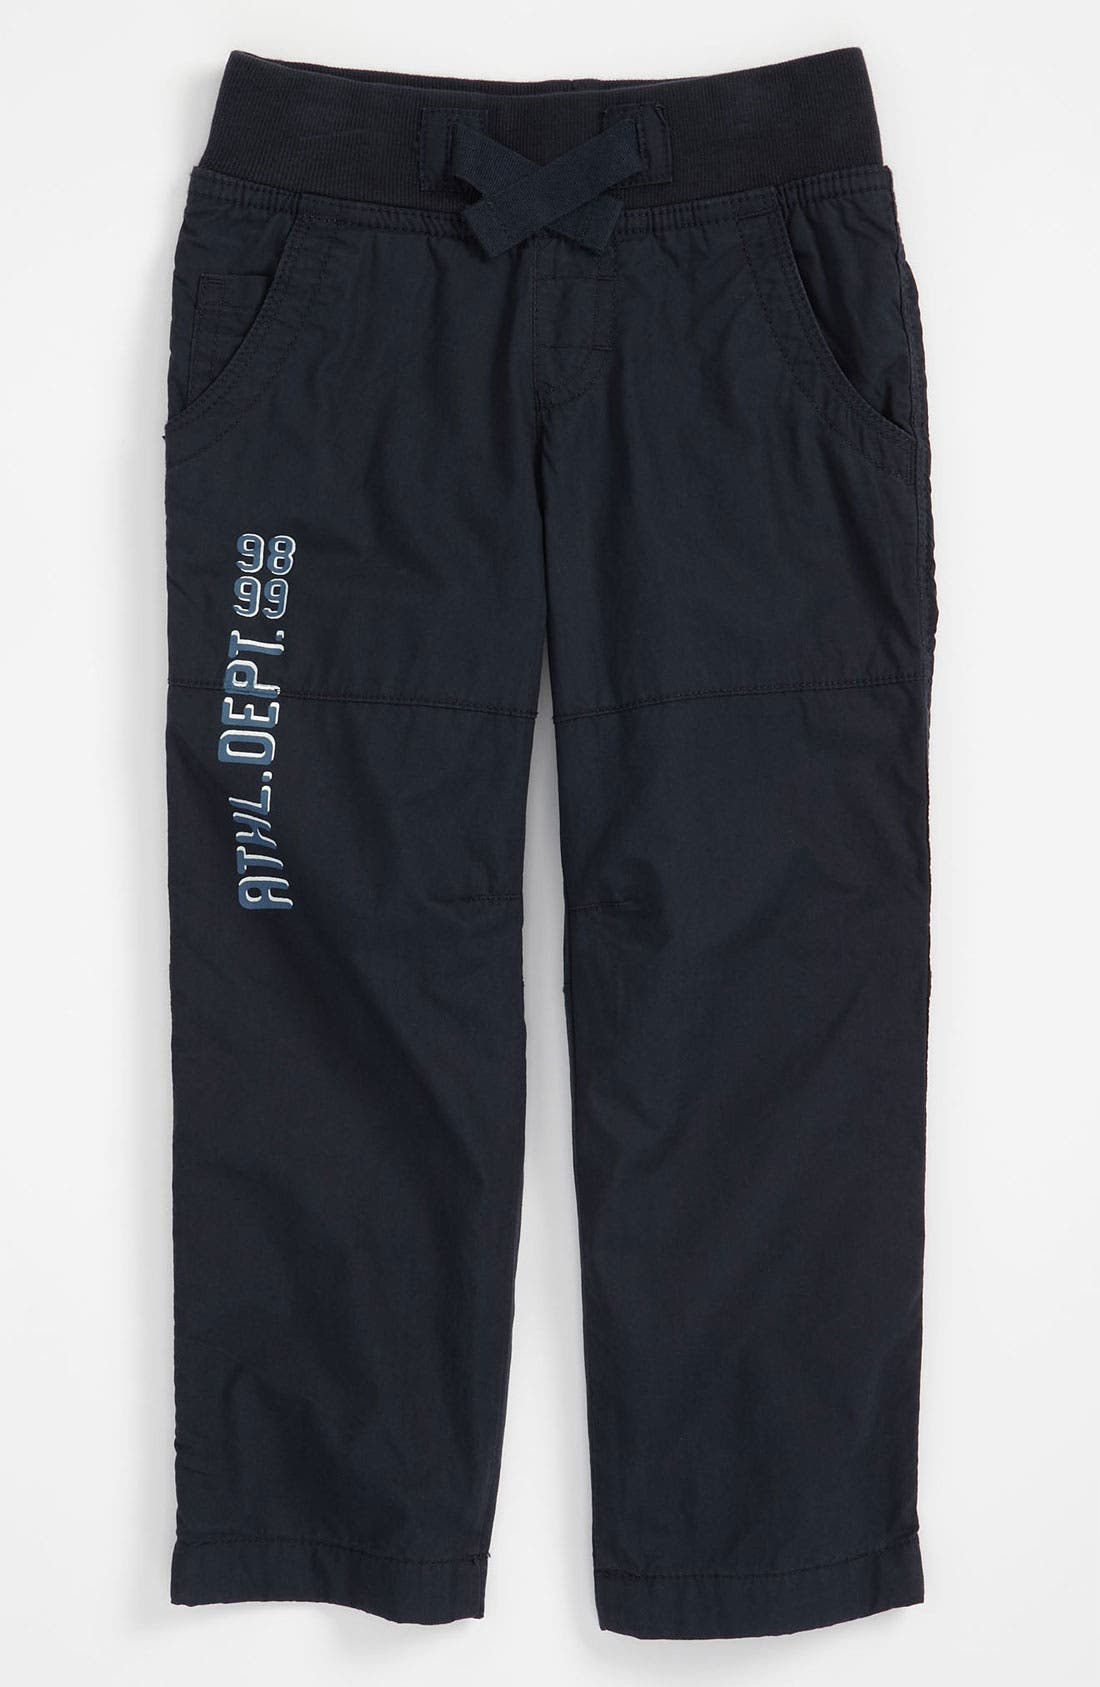 Alternate Image 1 Selected - United Colors of Benetton Kids 'Sport' Pants (Toddler)